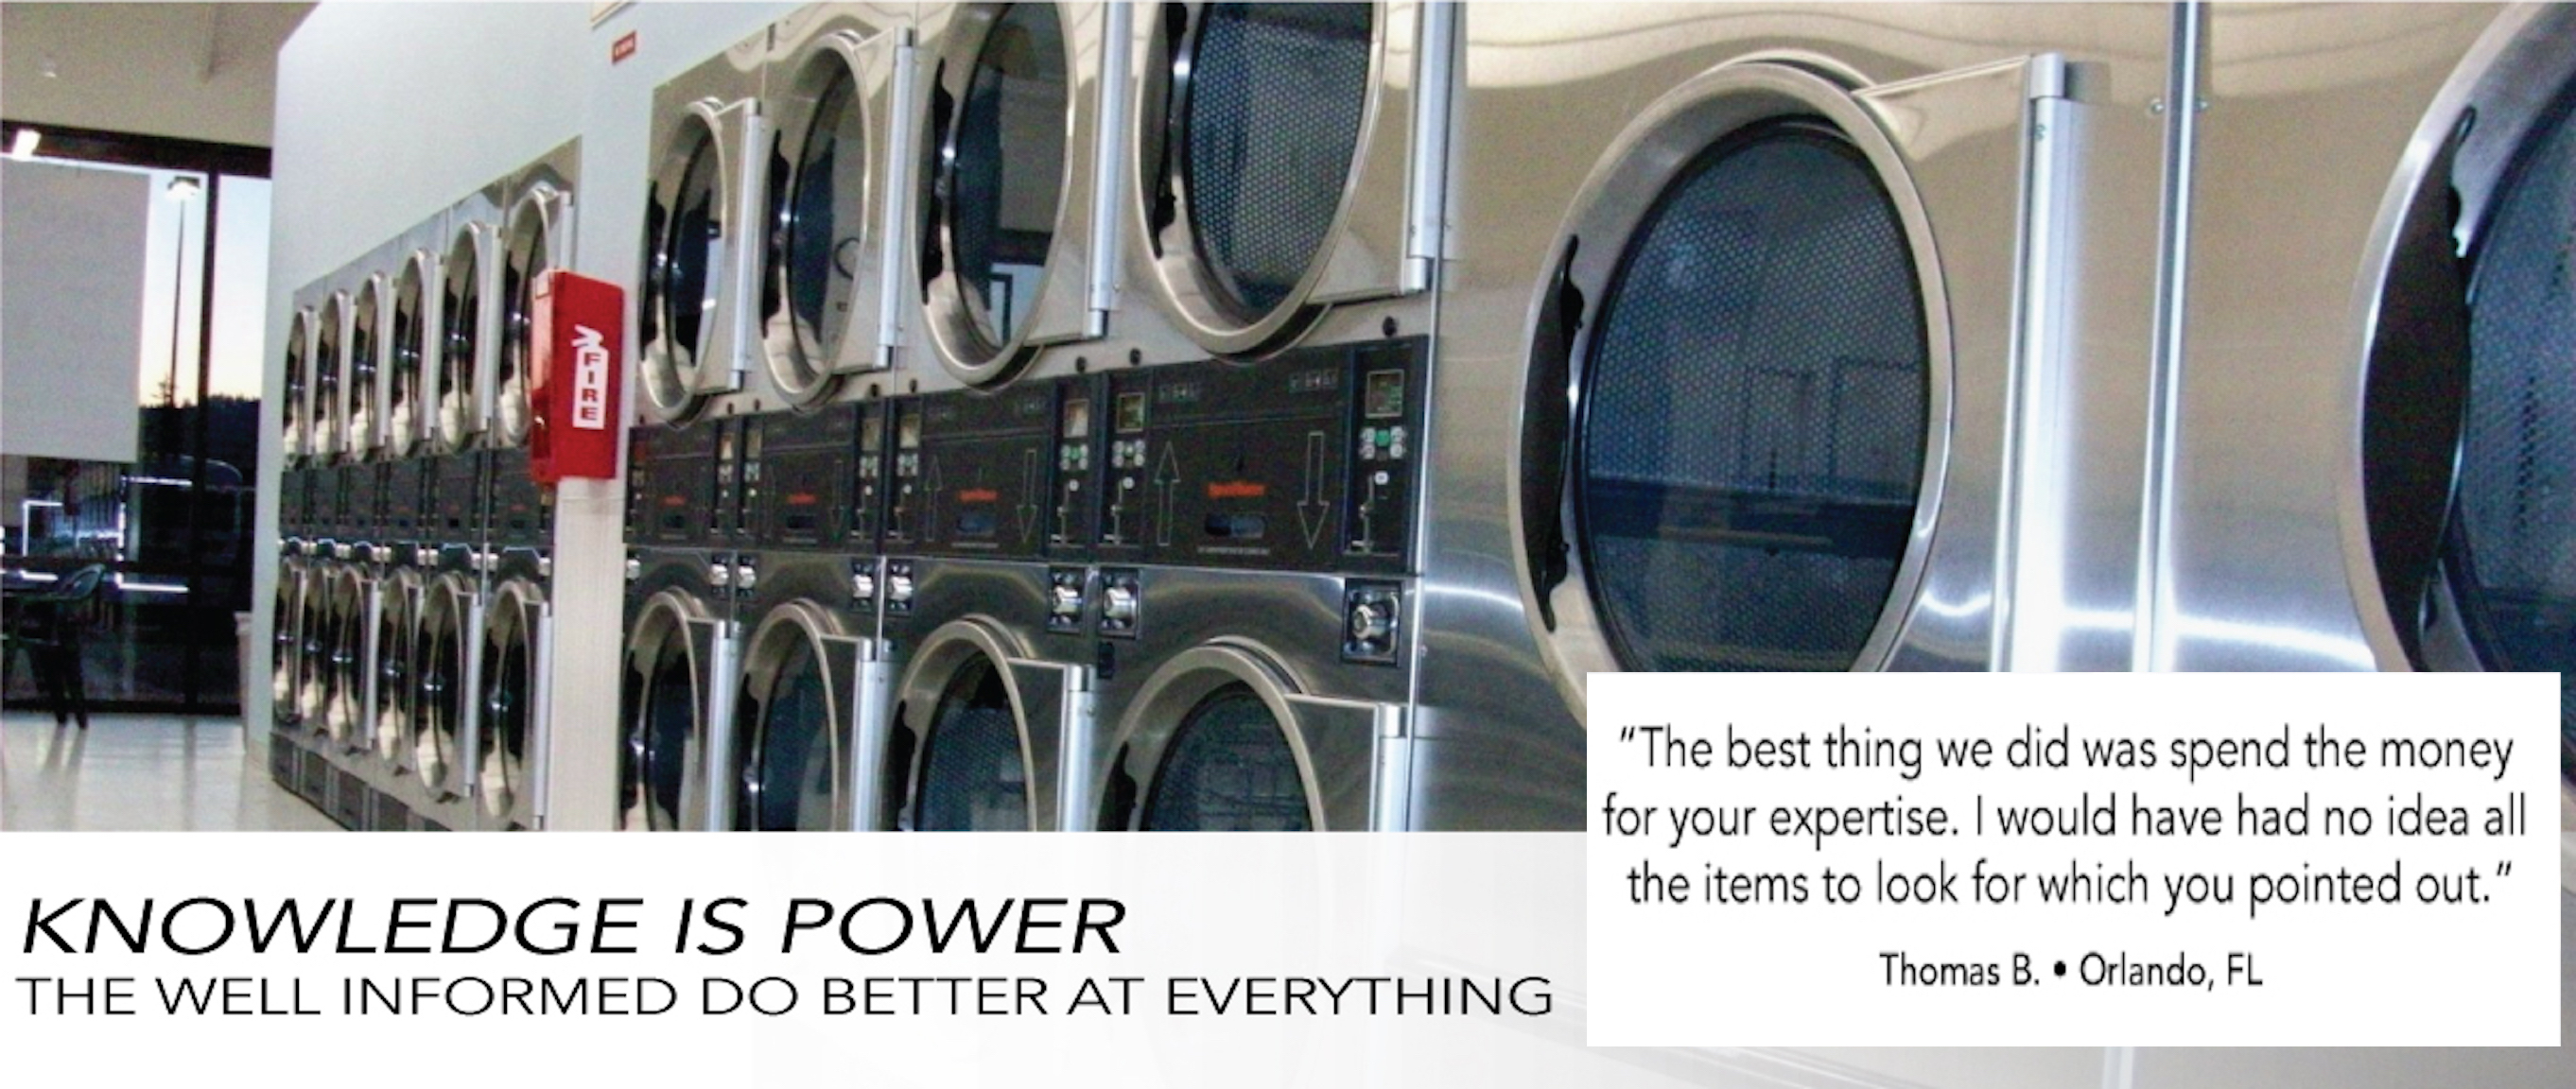 Bbb accredited expert will teach you how to value and buy a laundromat more client testimonials solutioingenieria Gallery